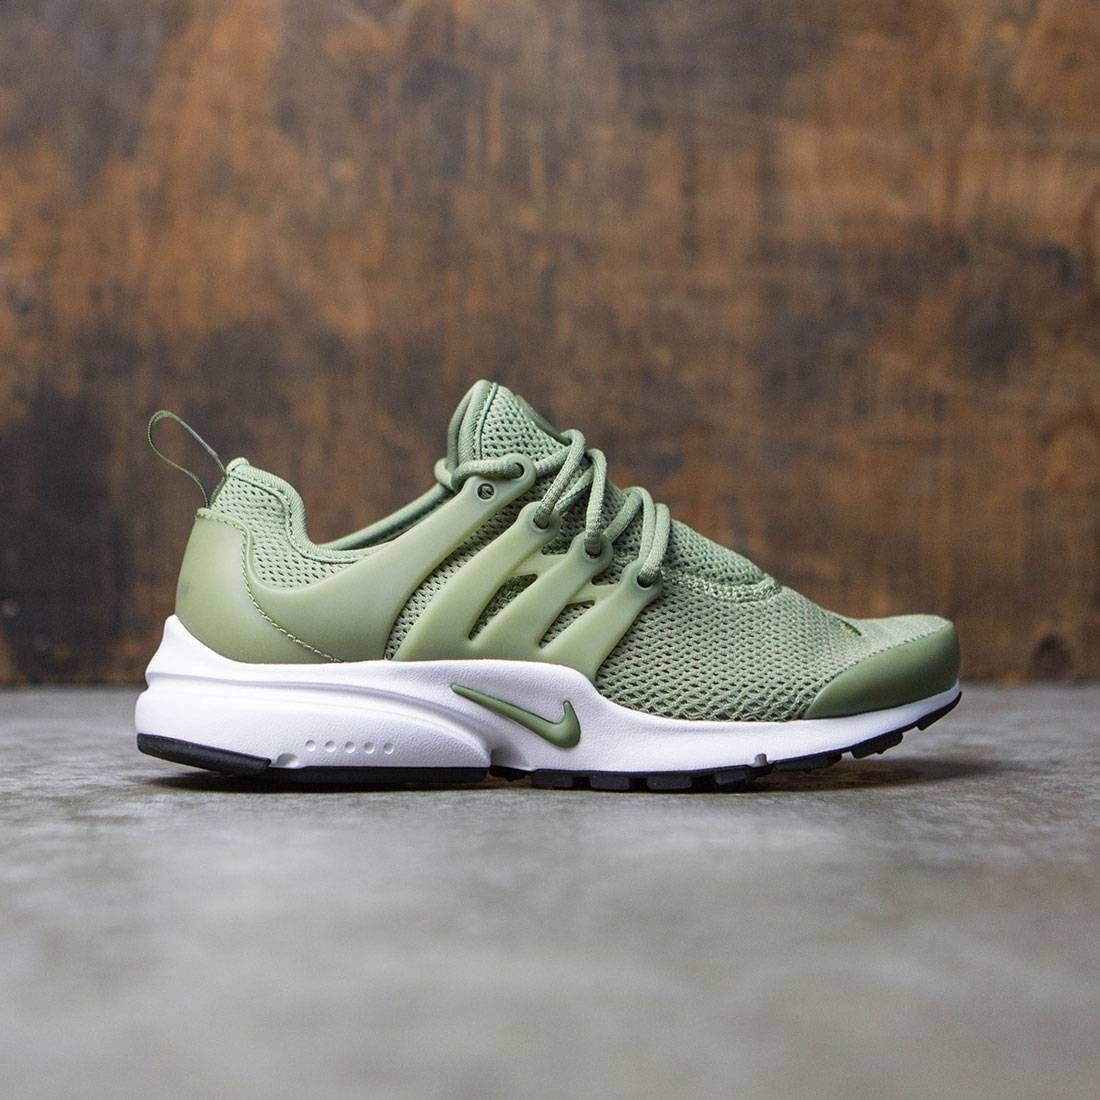 Nike Women Air Presto Palm Green Palm Green Legion Green White Nike Shoes Women Tennis Shoes Outfit Nike Women